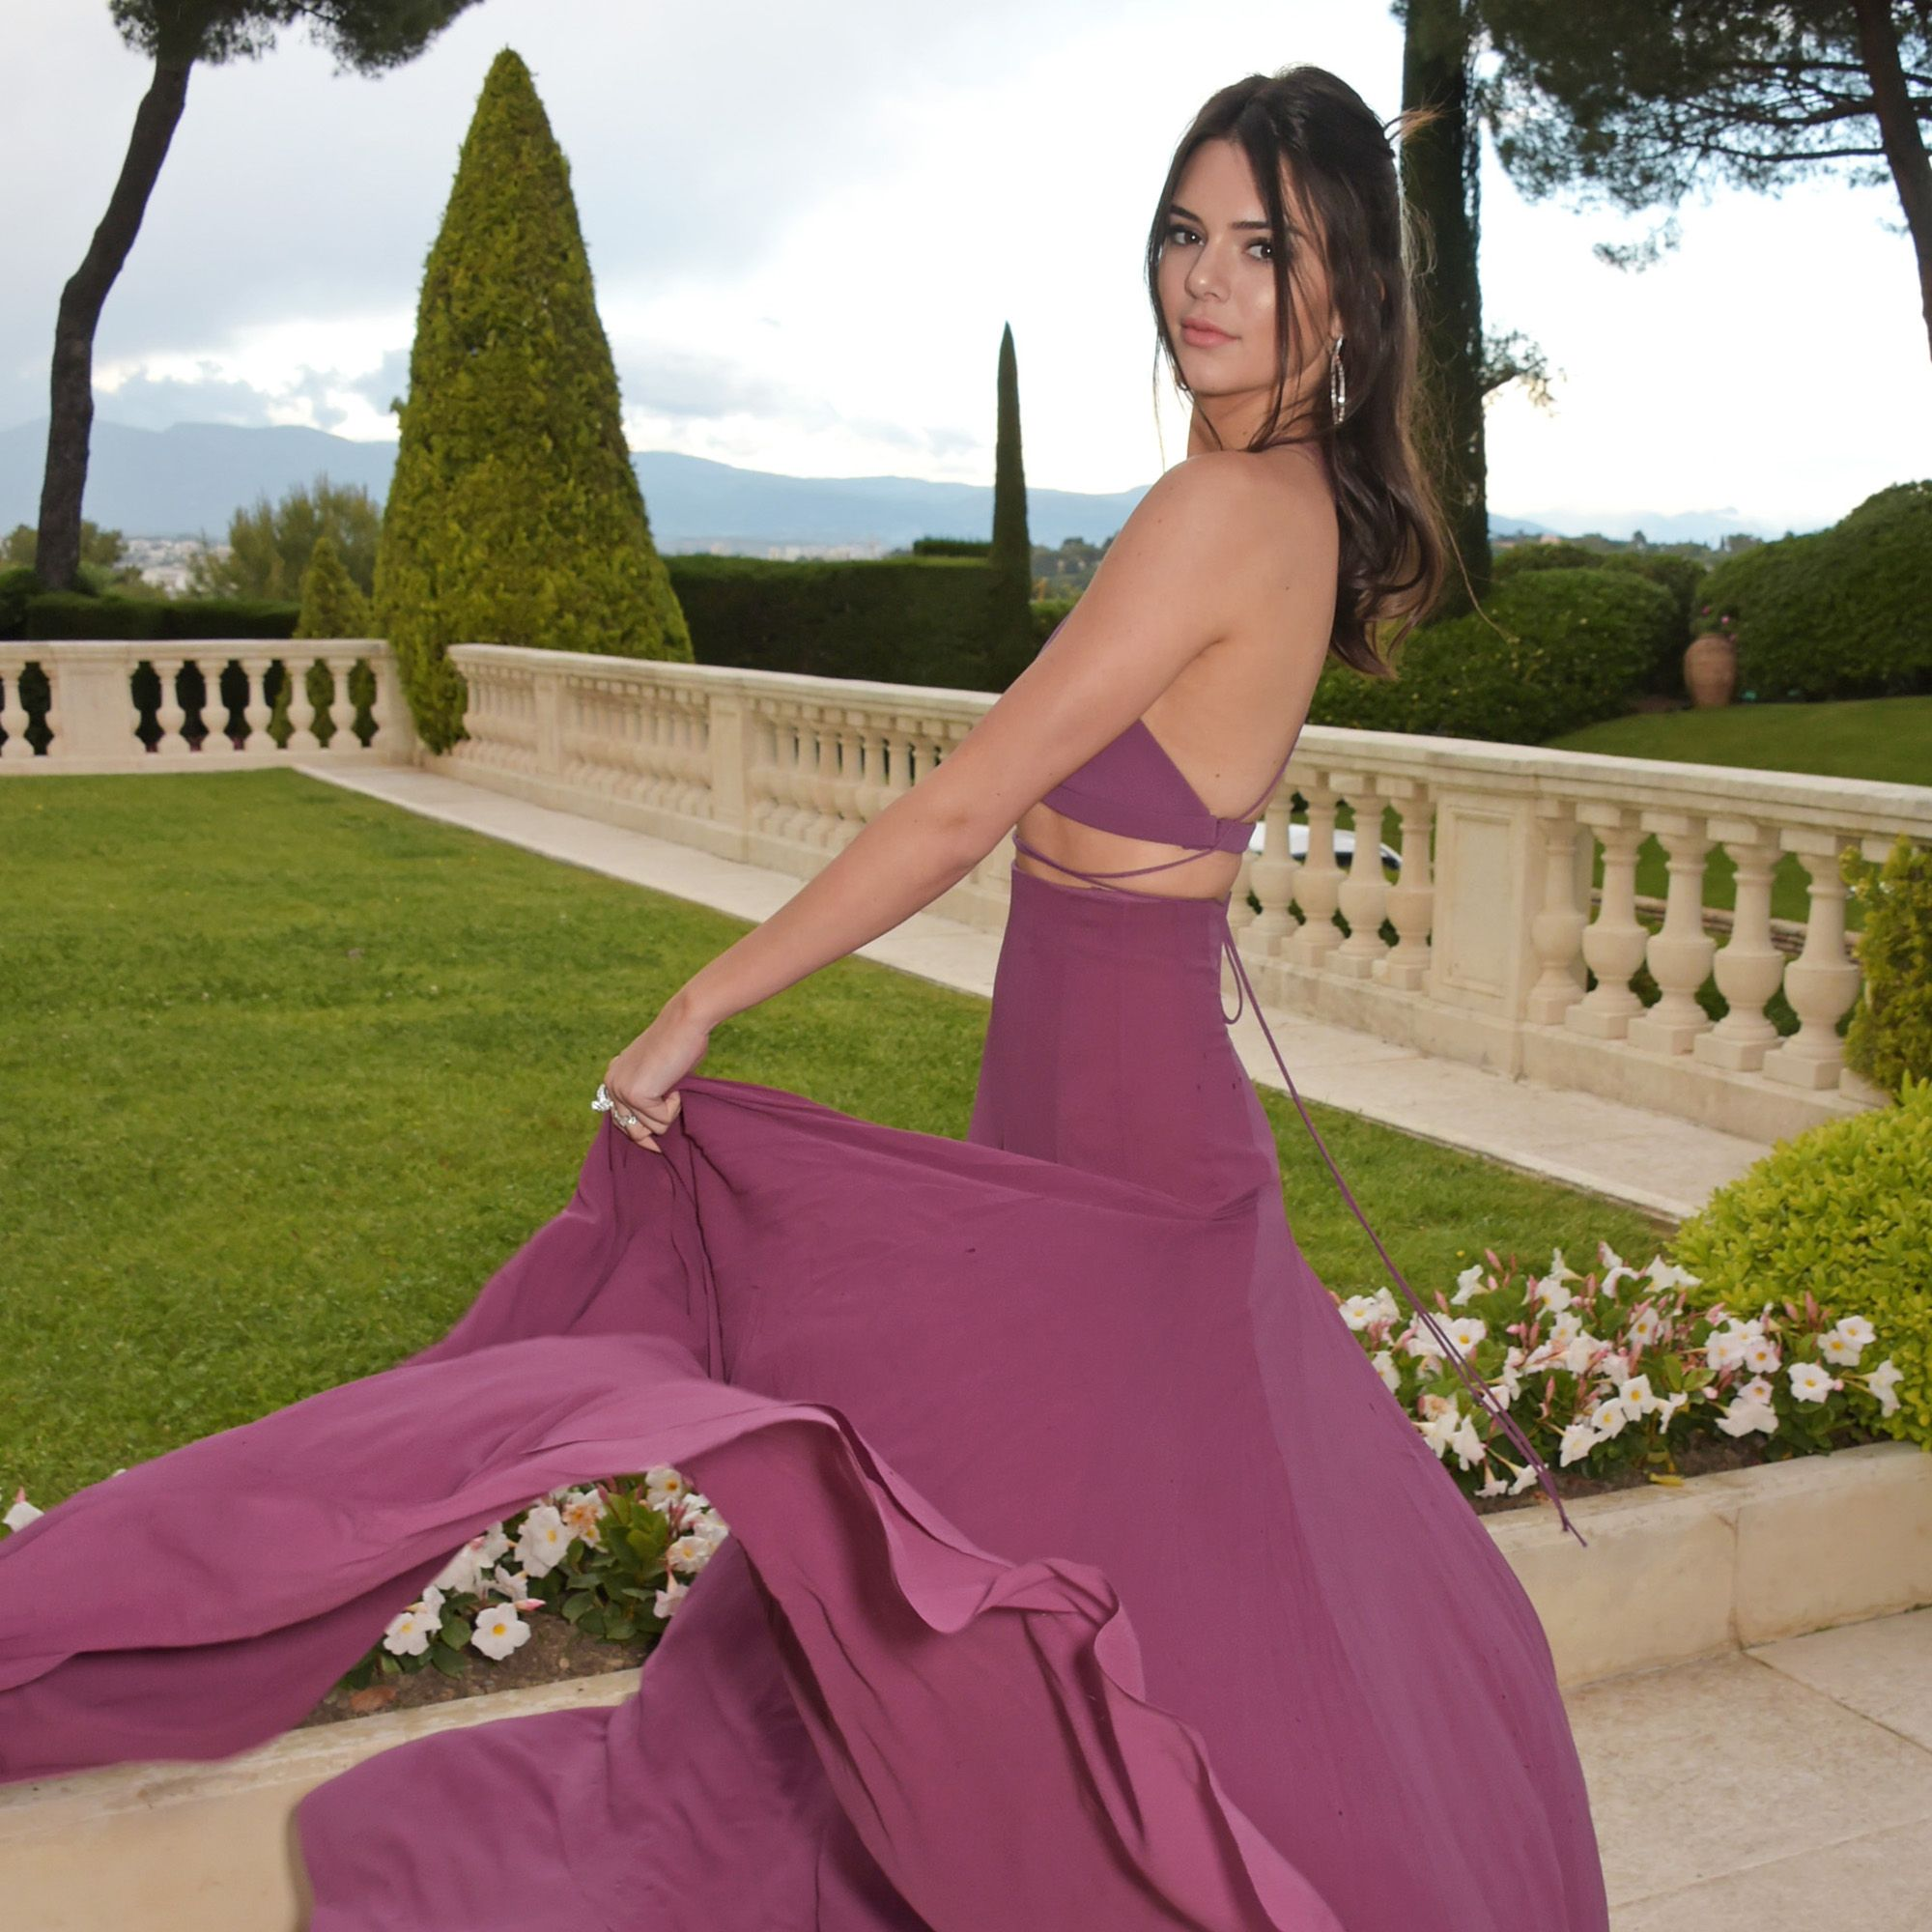 CAP D'ANTIBES, FRANCE - MAY 21:  Kendall Jenner arrives at amfAR's 22nd Cinema Against AIDS Gala, Presented By Bold Films And Harry Winston at Hotel du Cap-Eden-Roc on May 21, 2015 in Cap d'Antibes, France.  (Photo by Dave M. Benett/amfAR15/WireImage)